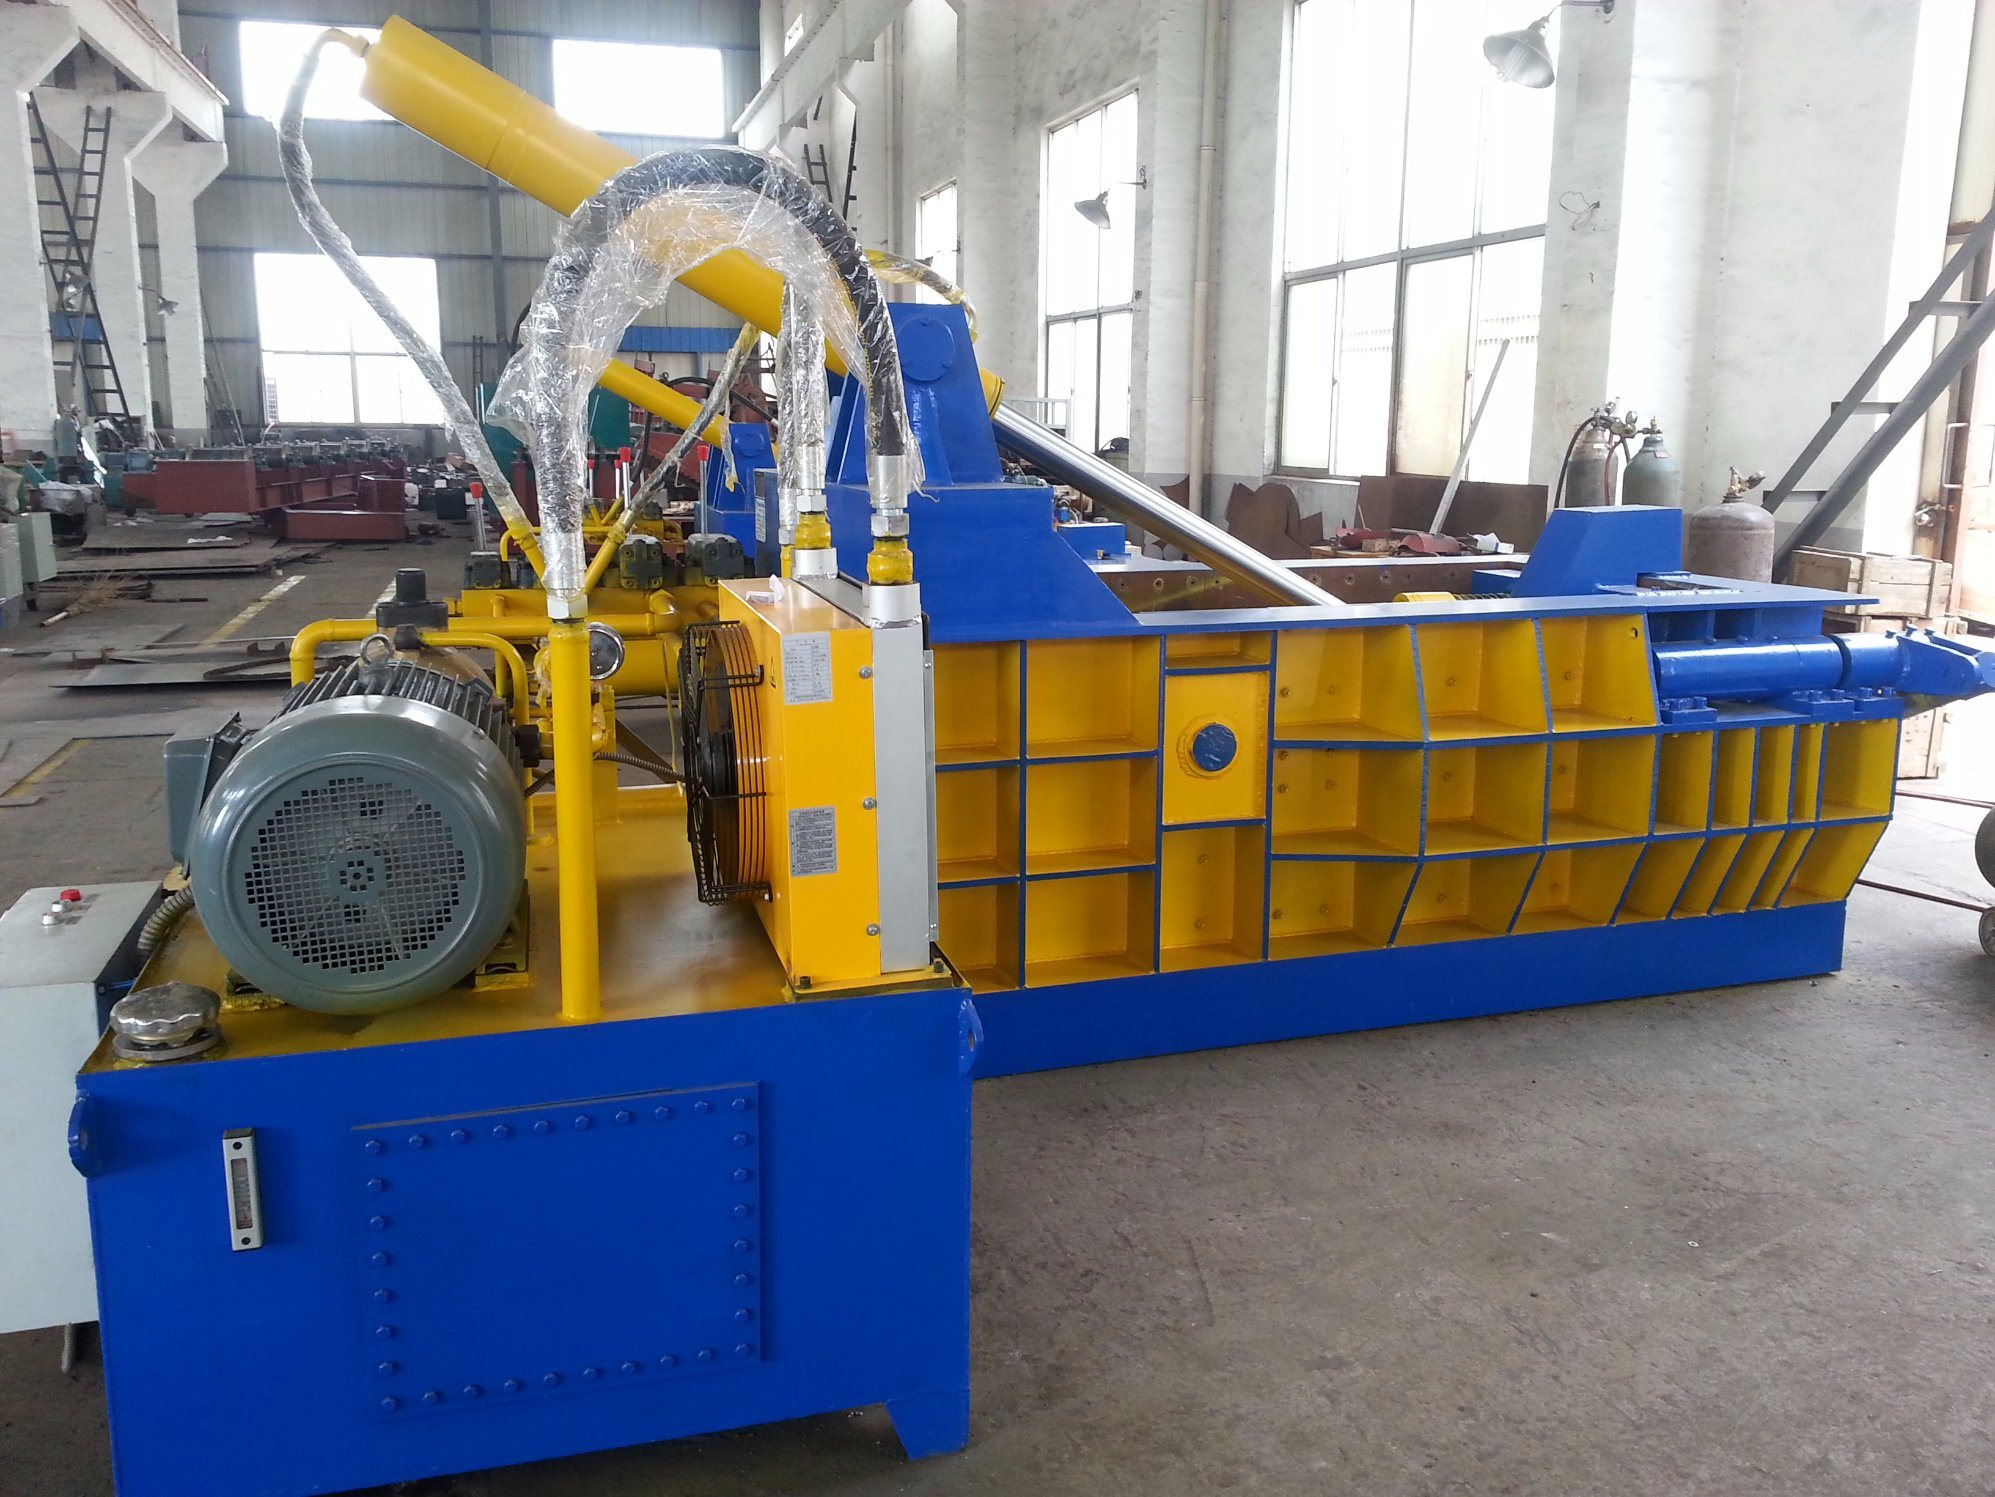 2017 Newest Horizontal Hydraulic Scrap Metal Baler/Compactor/Baling Machine pictures & photos